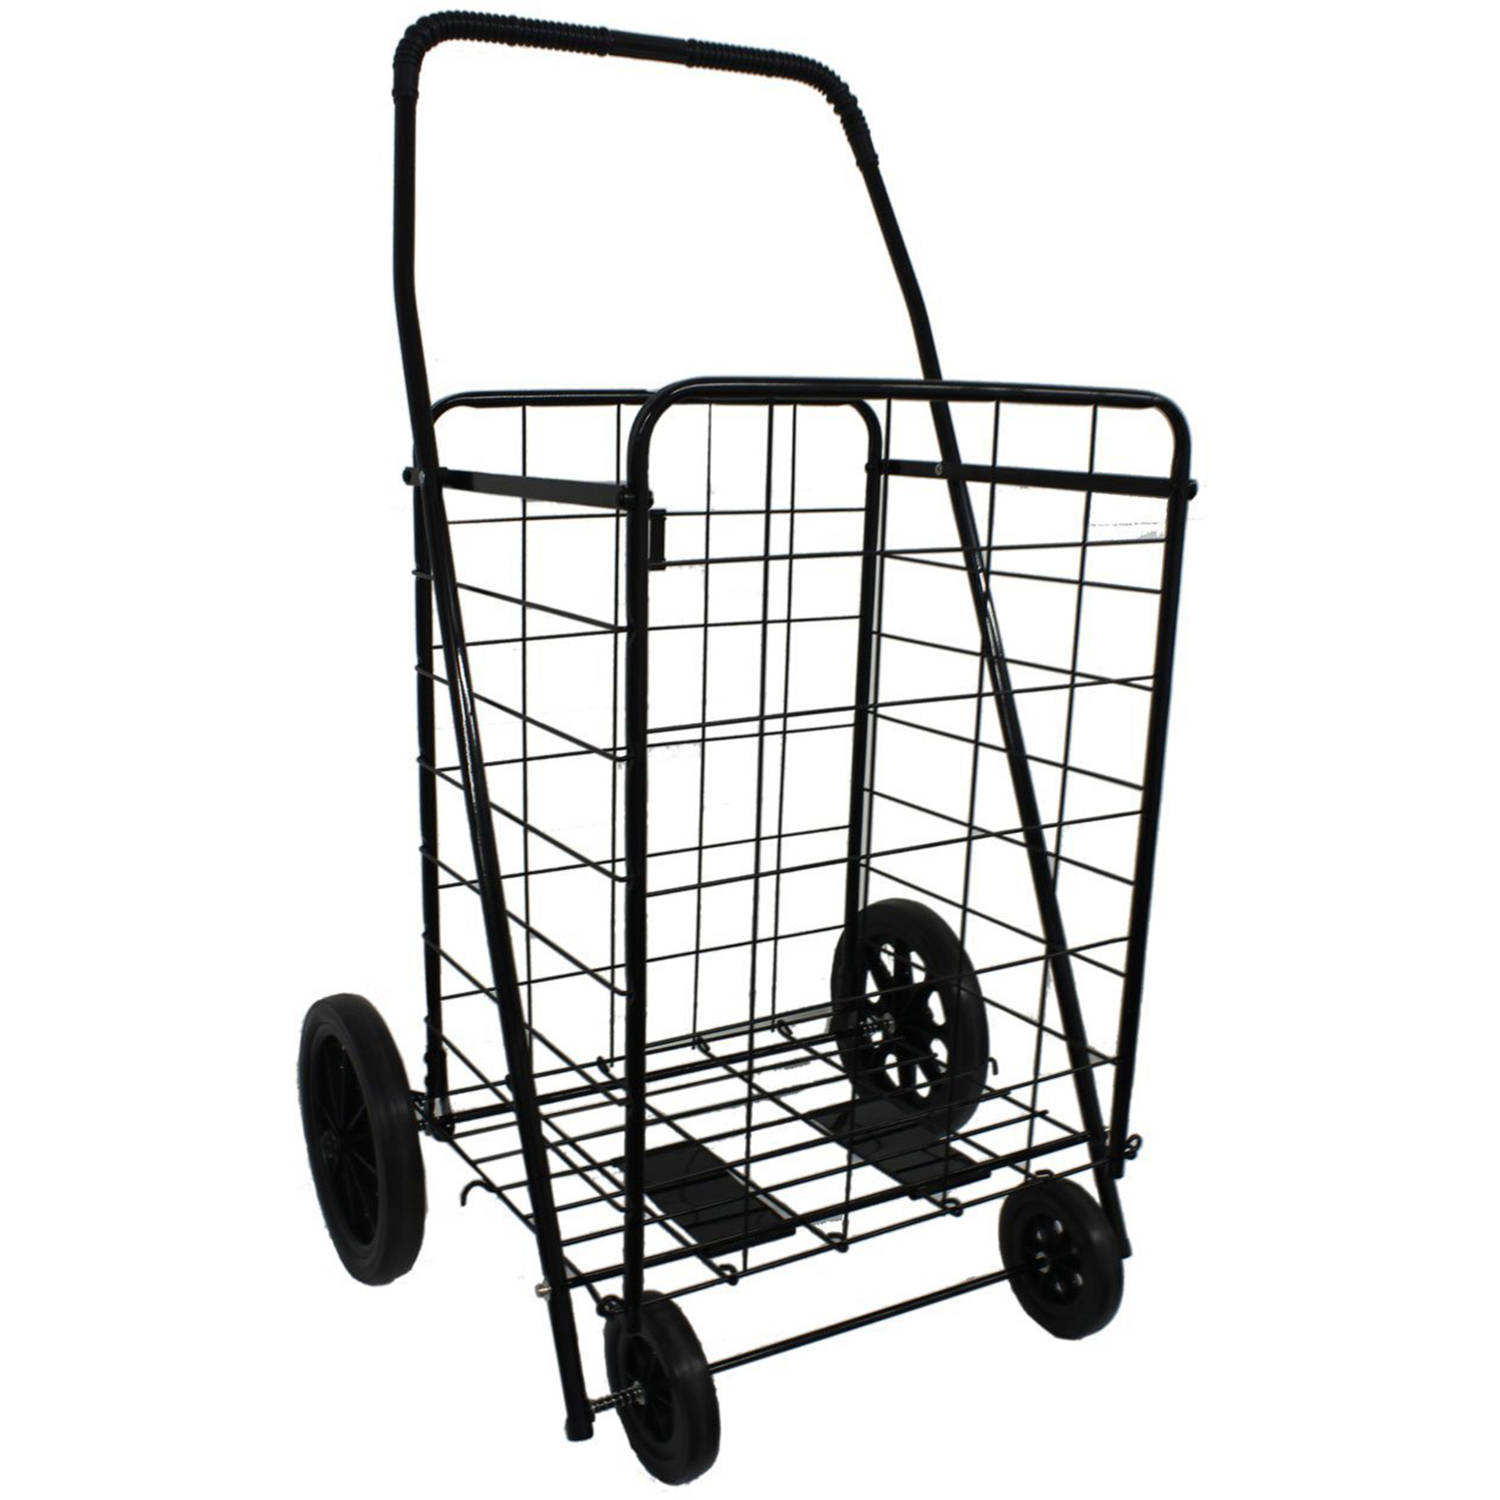 DLUX Model D801 Shopping Cart Size Black